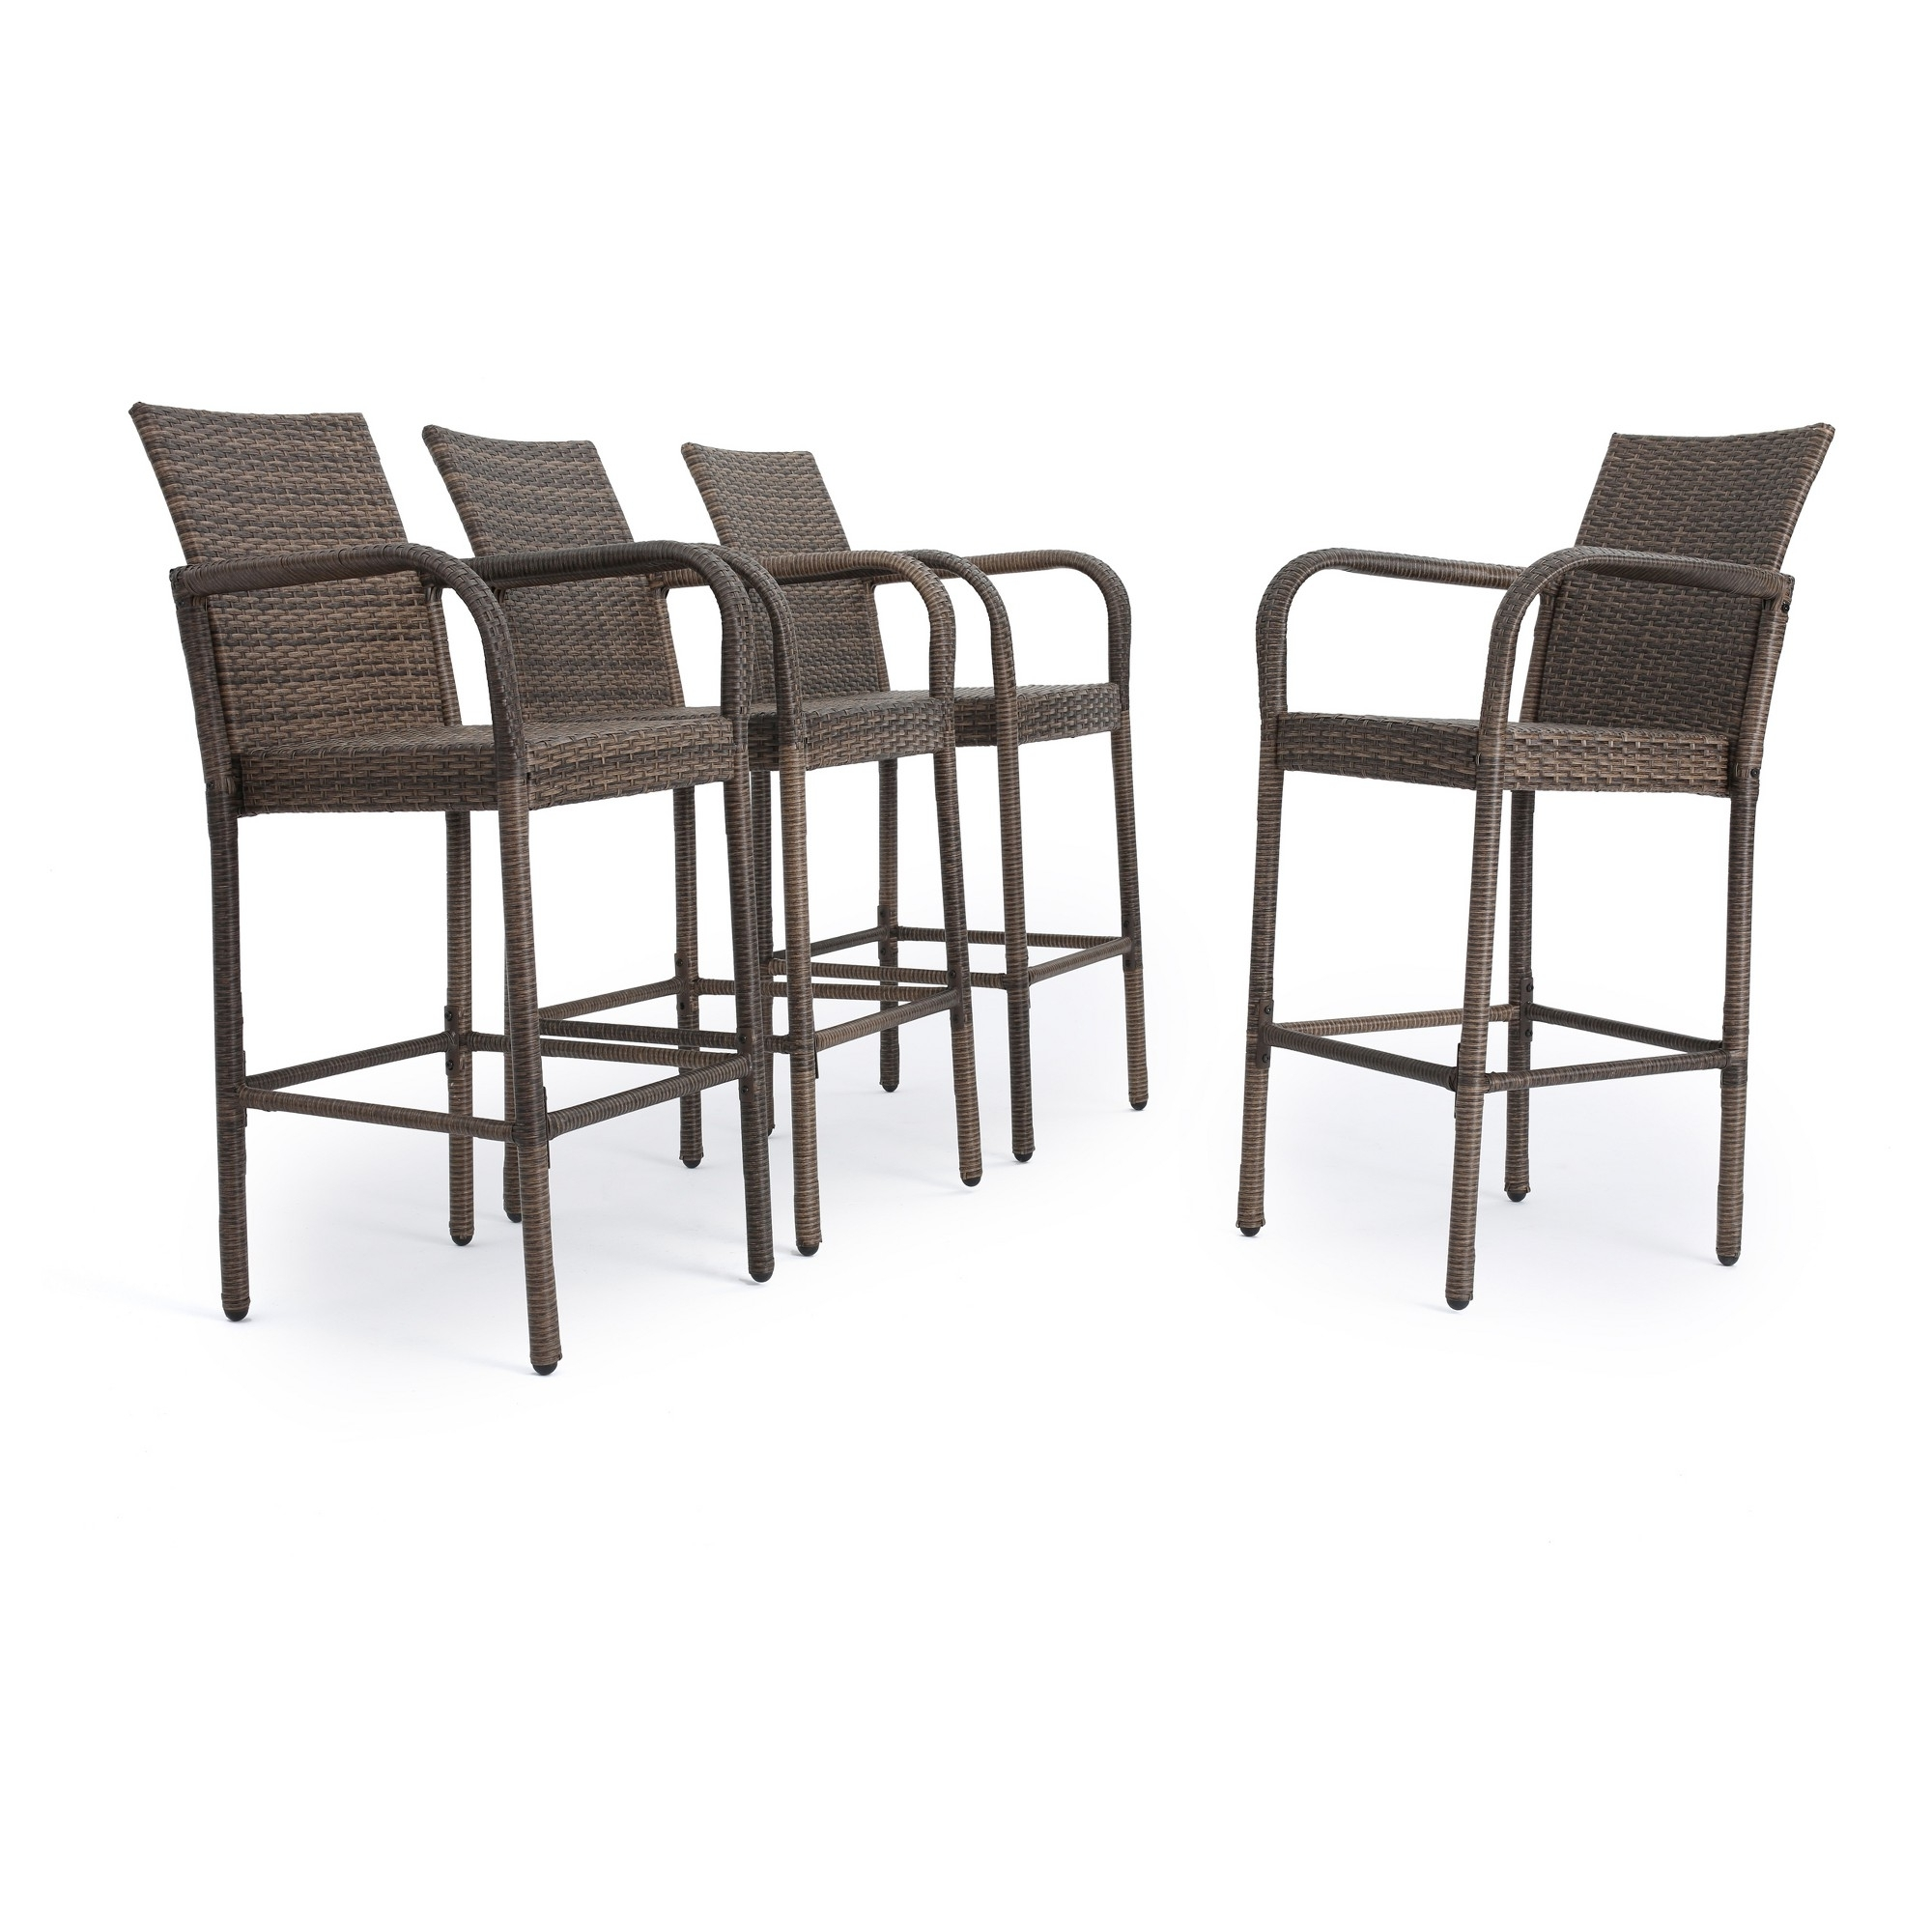 Famous Delfina Dining Tables Throughout Delfina Set Of 4 Wicker Barstool – Mix Mocha – Christopher Knight (View 25 of 25)